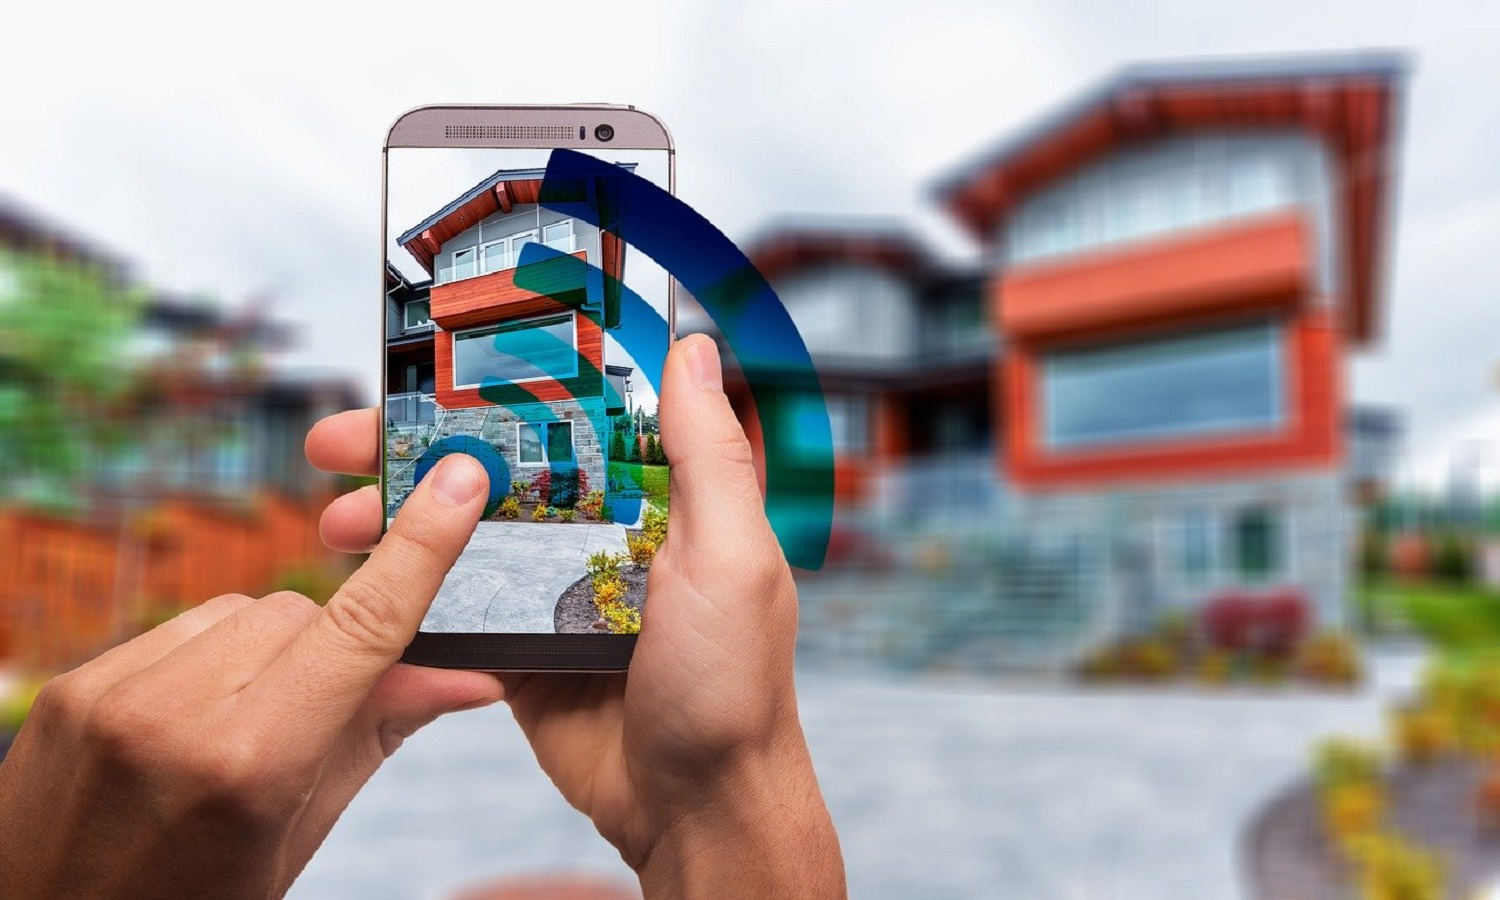 Are Smart Homes the New Way of Modern Living?